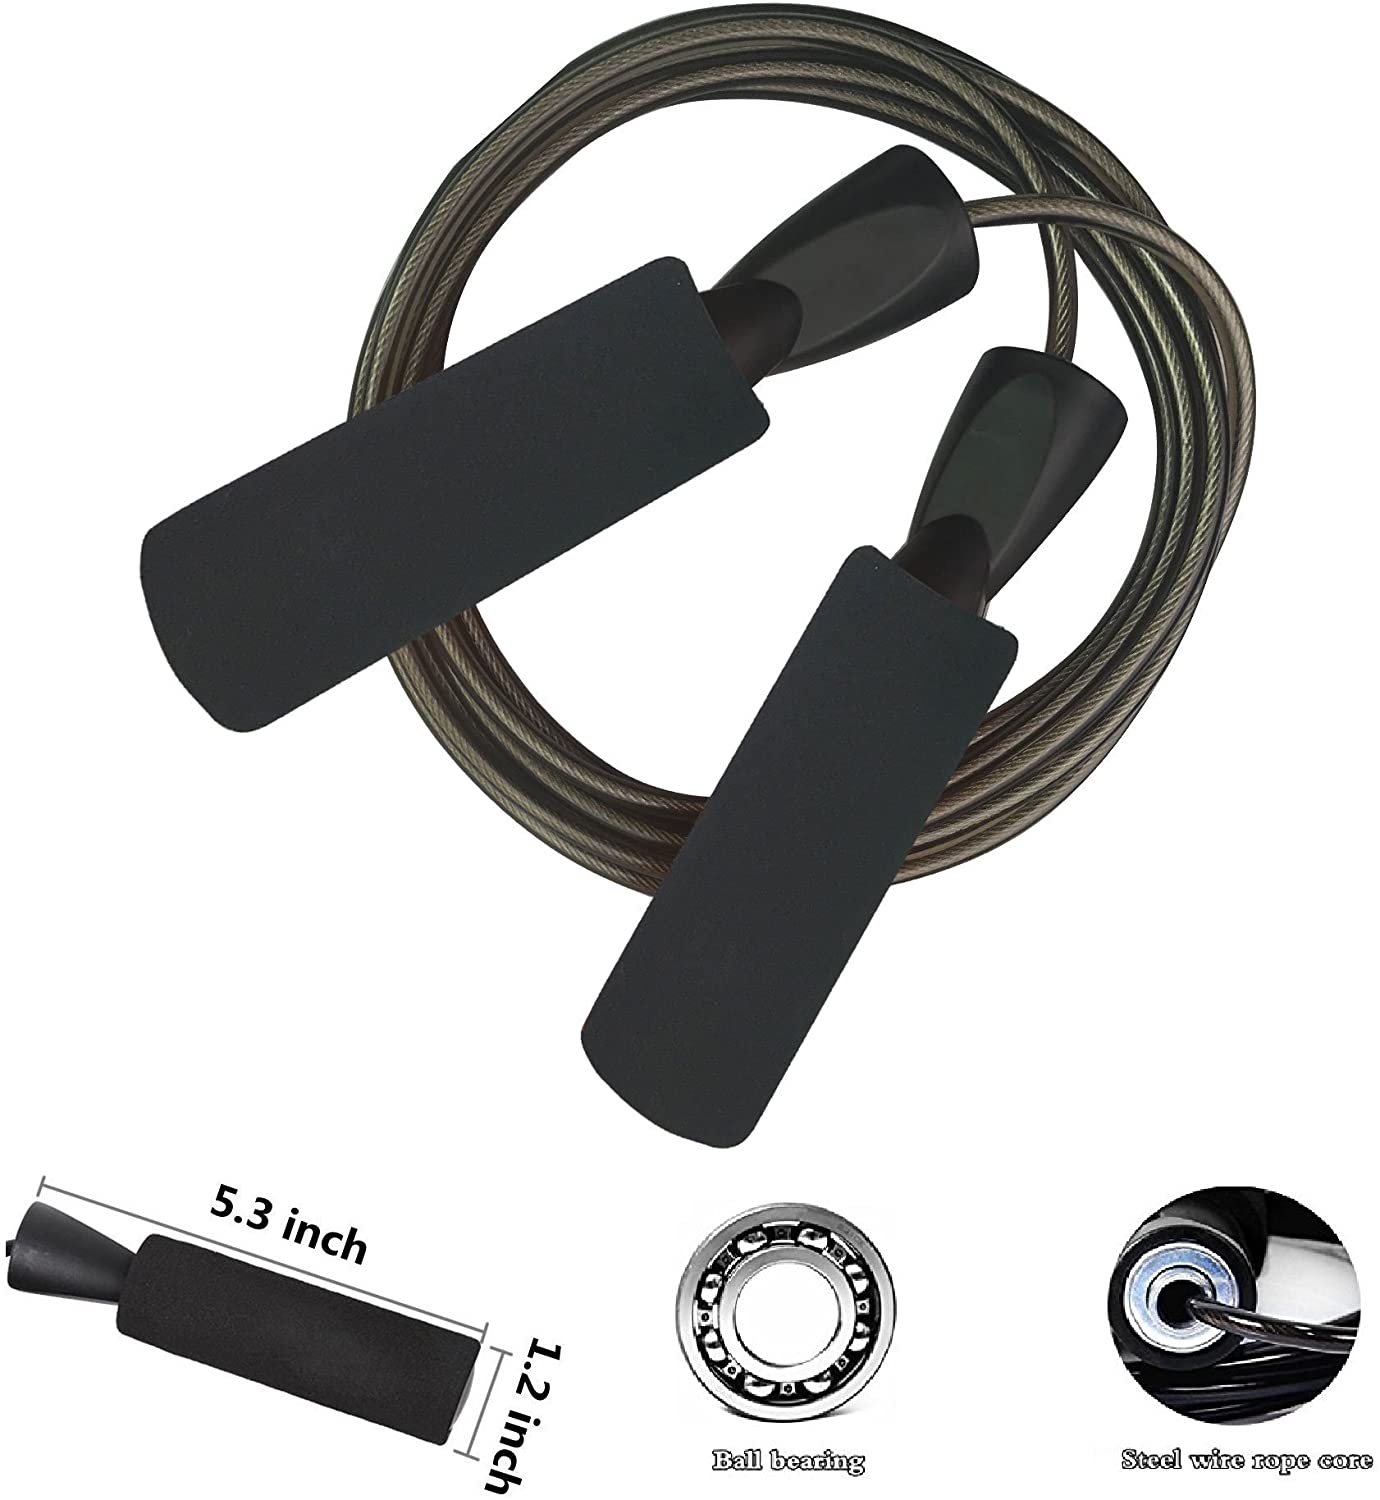 YZLSPORTS Professional Adjustable Steel Wire Jump Rope with Carrying Pouch by Fitness Factor Ergonomic, Durable, Easy to Adjust Premium Jump Rope All Heights : Sports & Outdoors